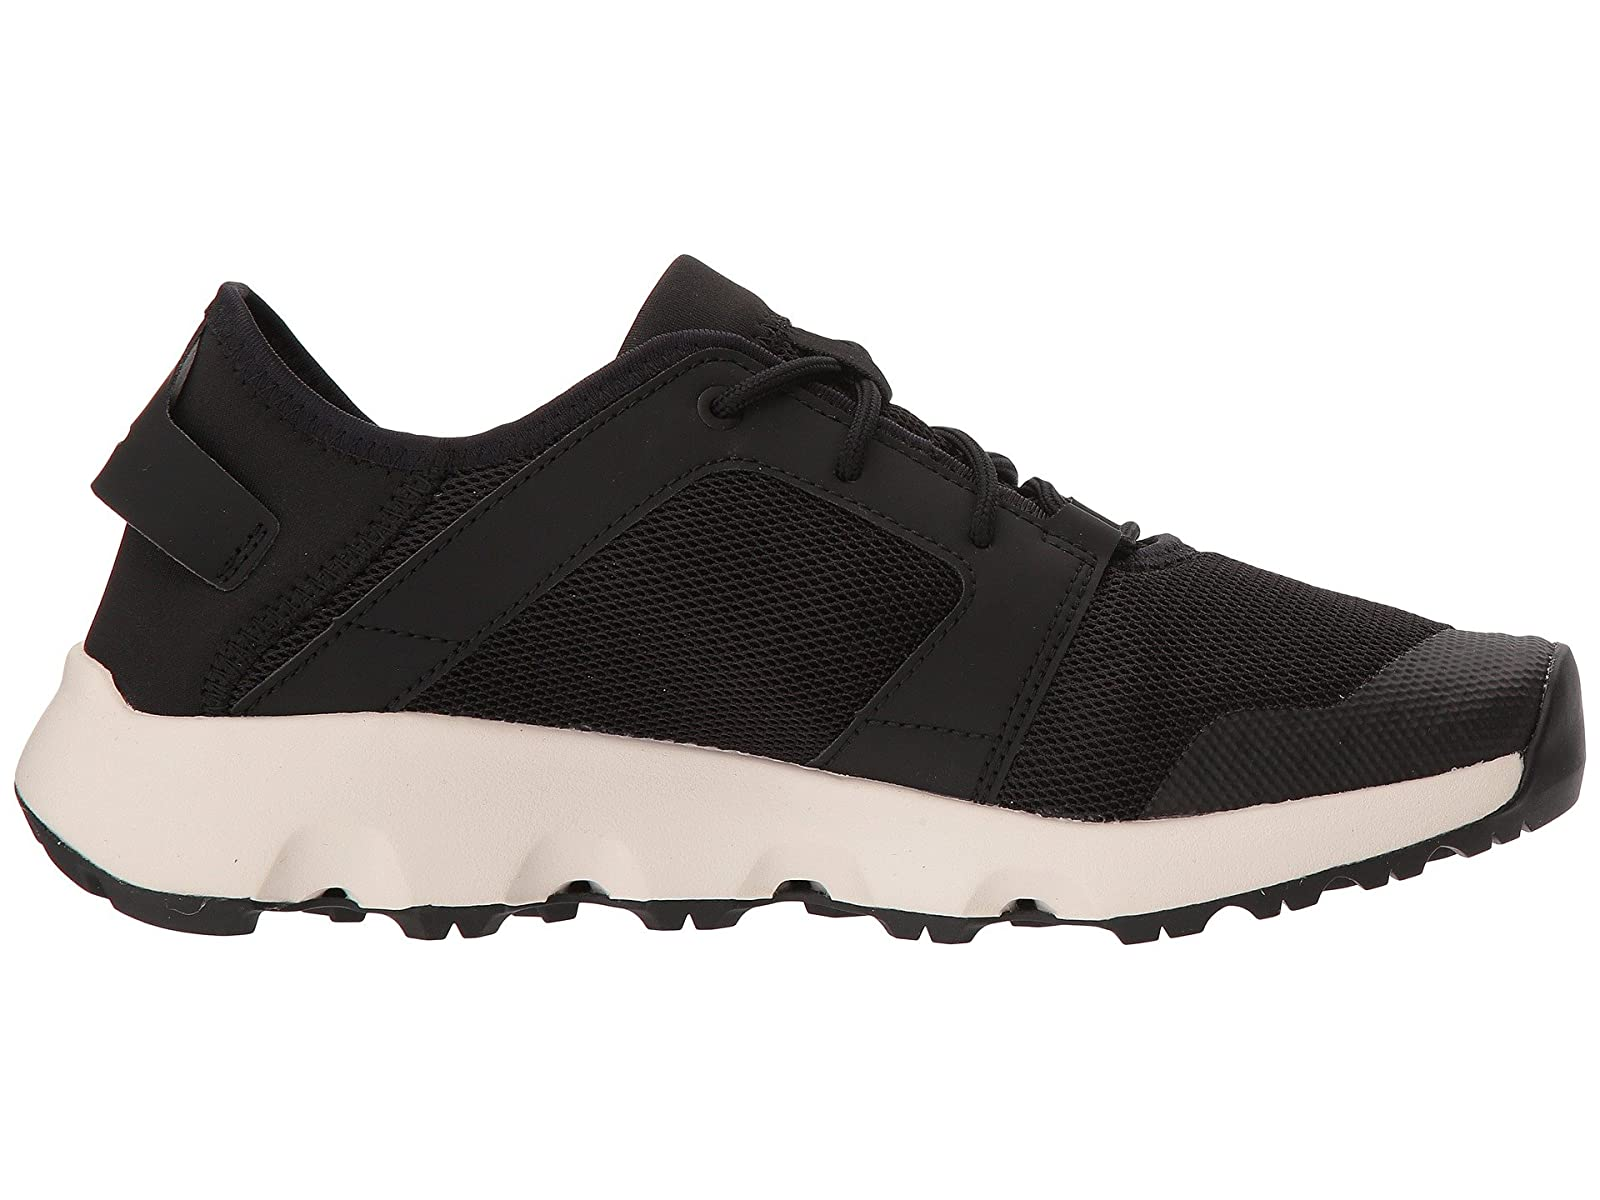 87c8b8a5e14 Details about Women's Sneakers & Athletic Shoes adidas Outdoor Terrex CC  Voyager Sleek